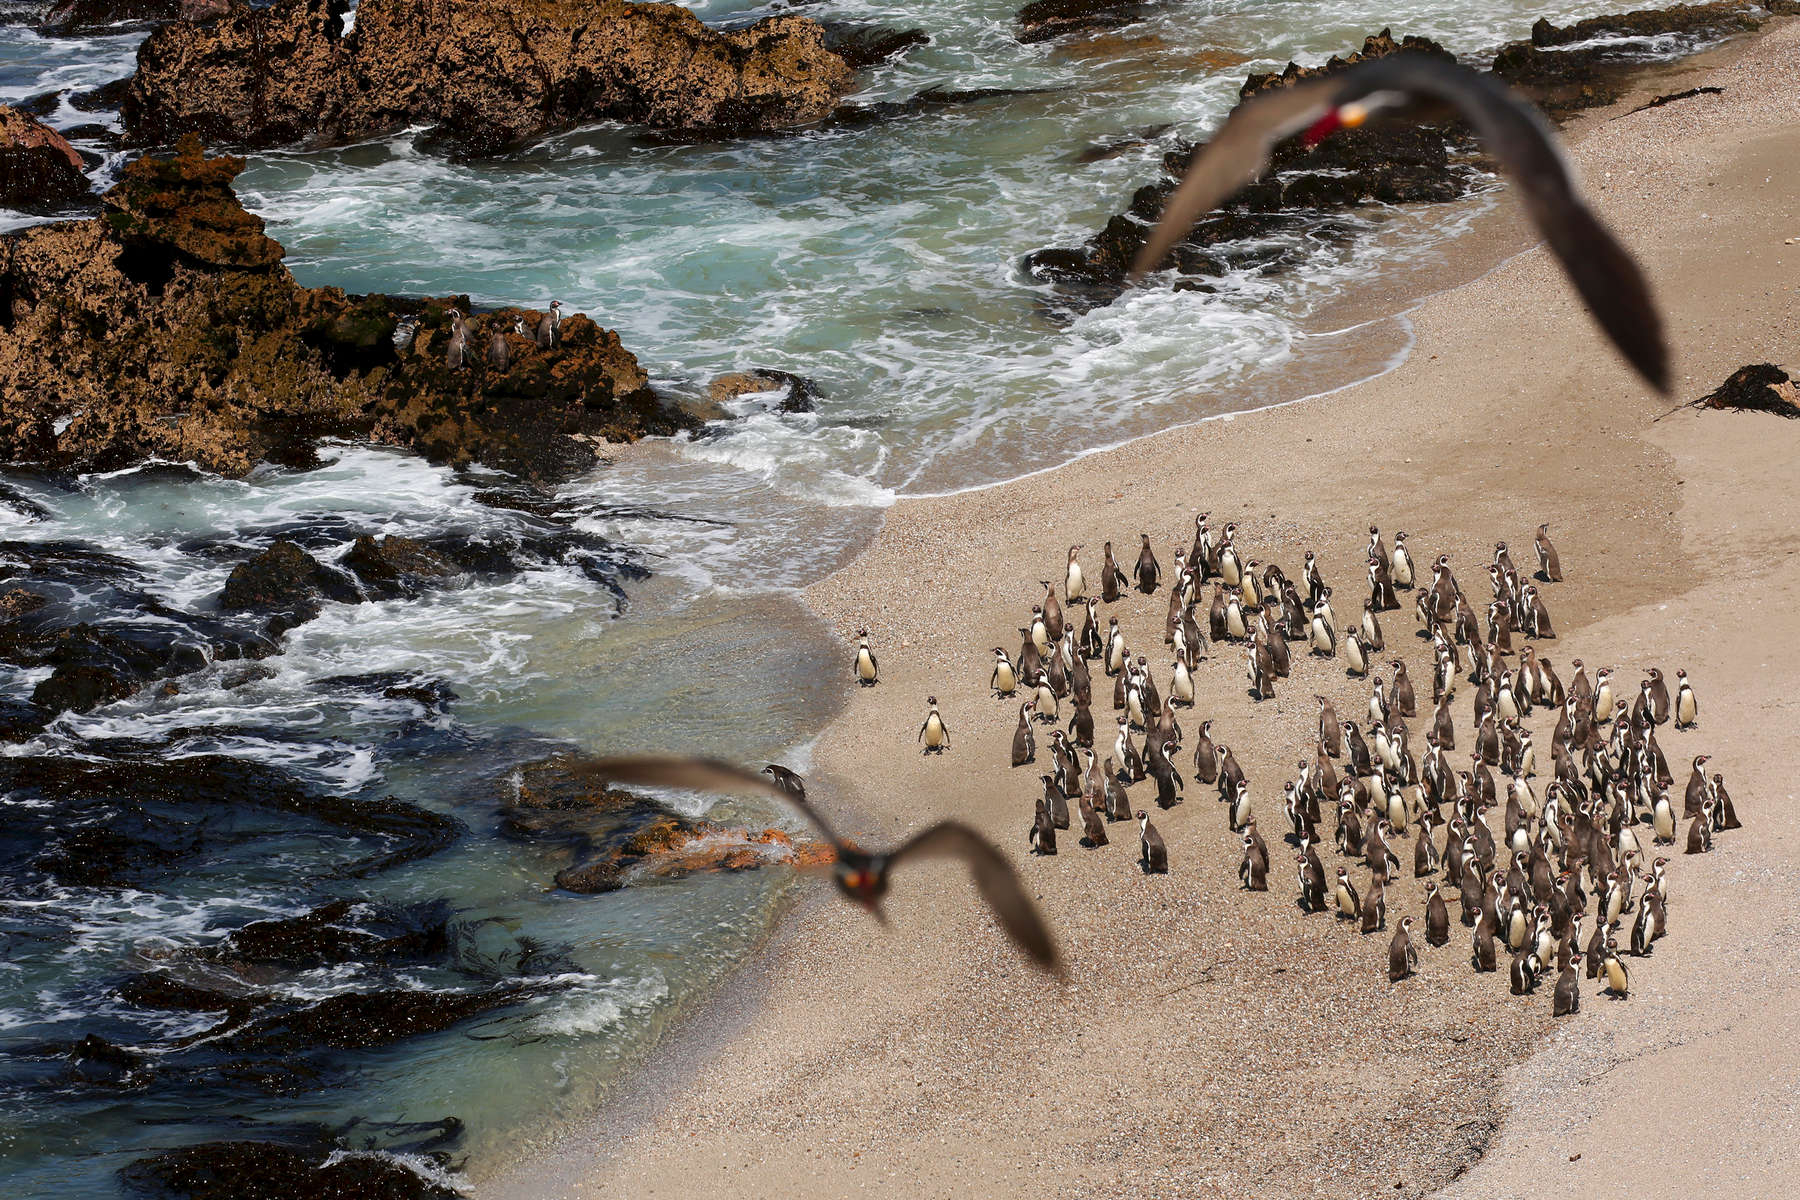 A group of Humboldt penguins stood on the beach together at the Punta San Juan coastal reserve. About 6,000 of Peru's 25,000 endangered Humboldt penguins reside at Punta San Juan, where they have been known gather in clusters of 100 or more.